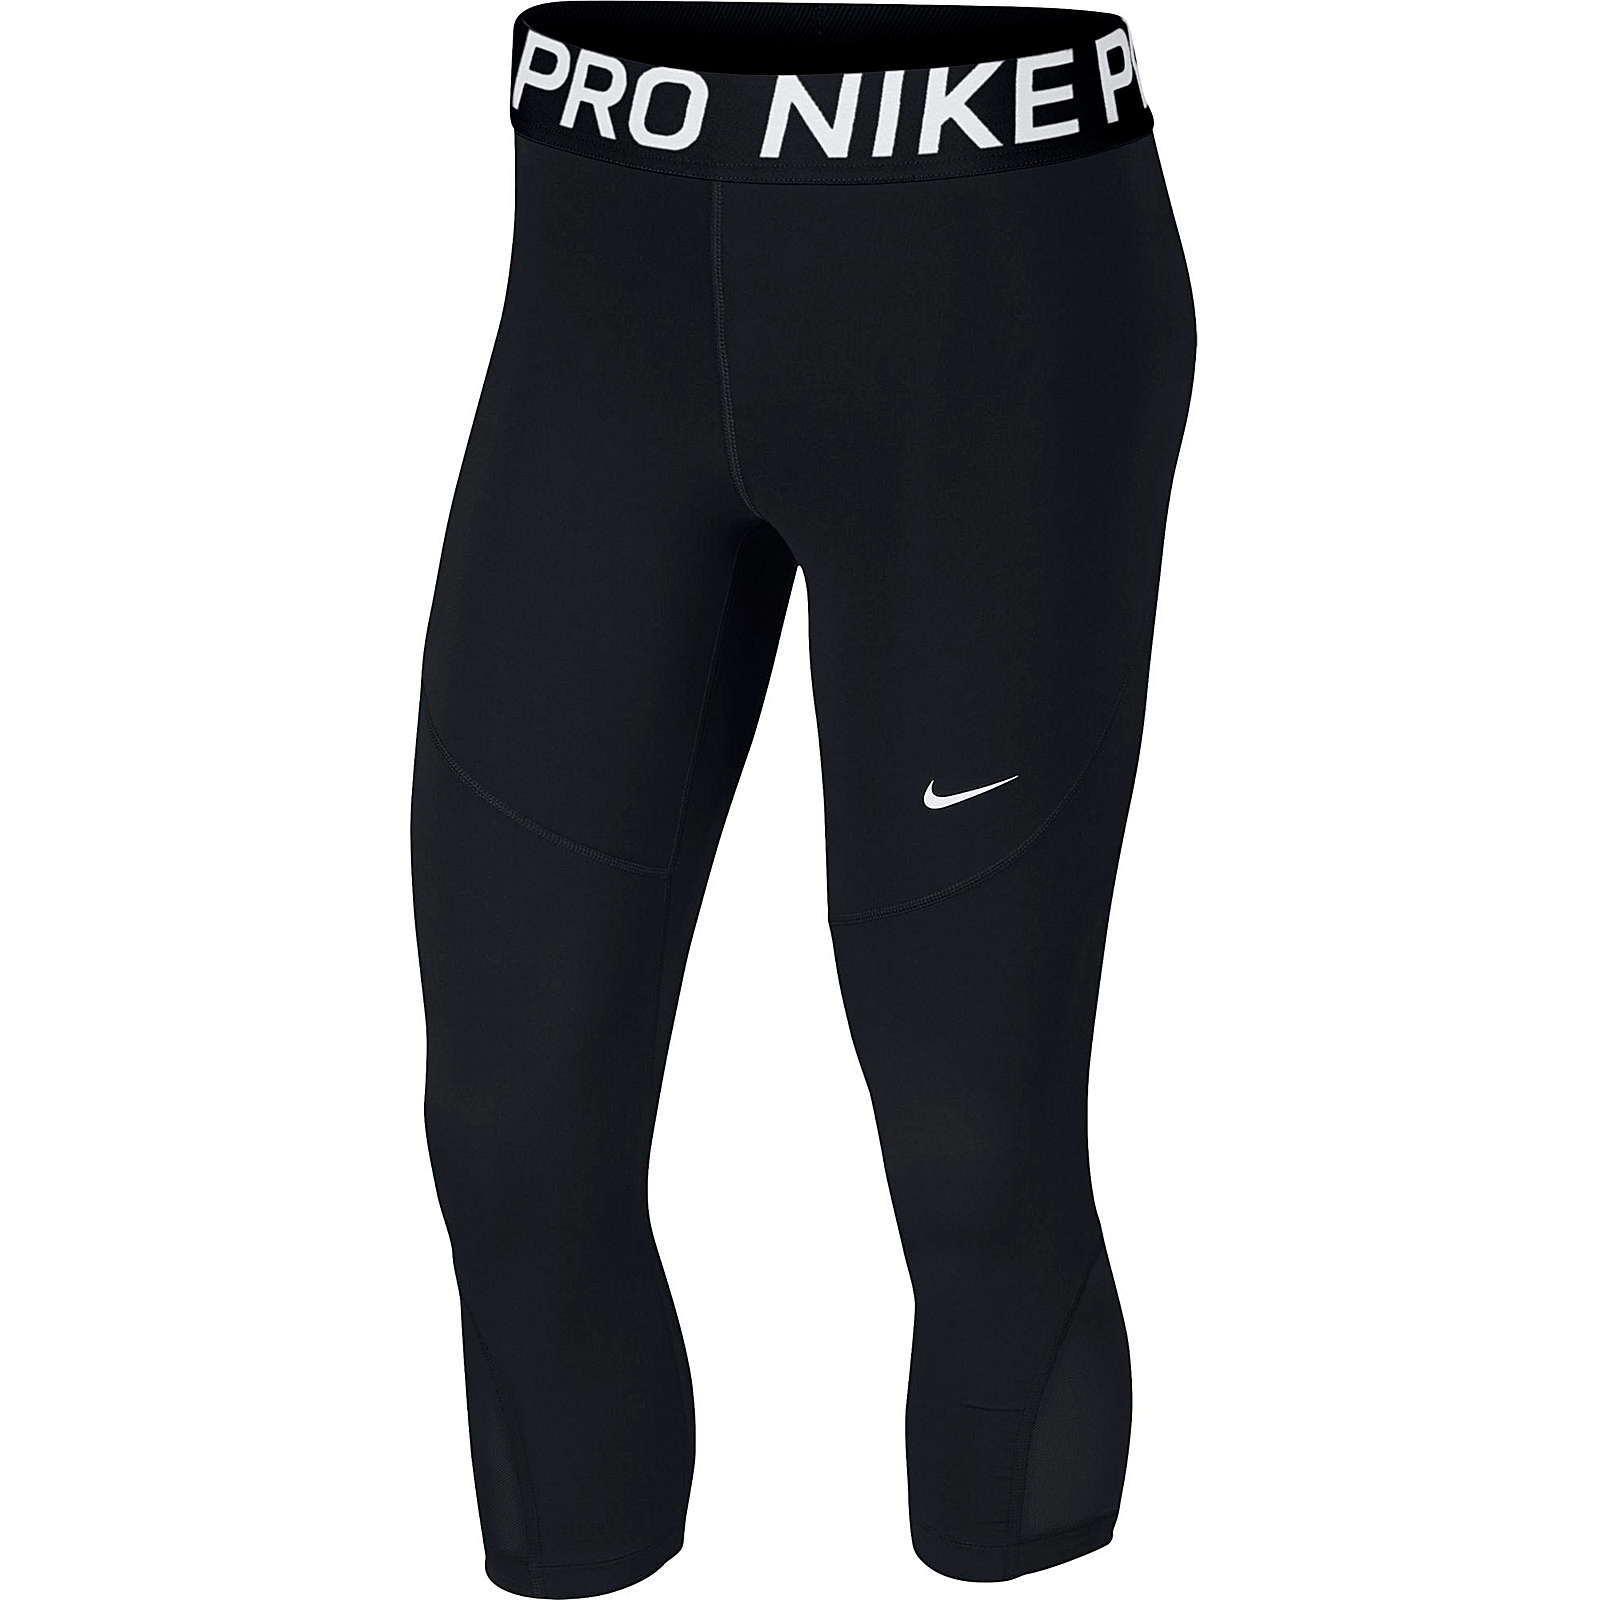 Nike Performance Tights Pro Sportleggings schwarz Damen Gr. 36